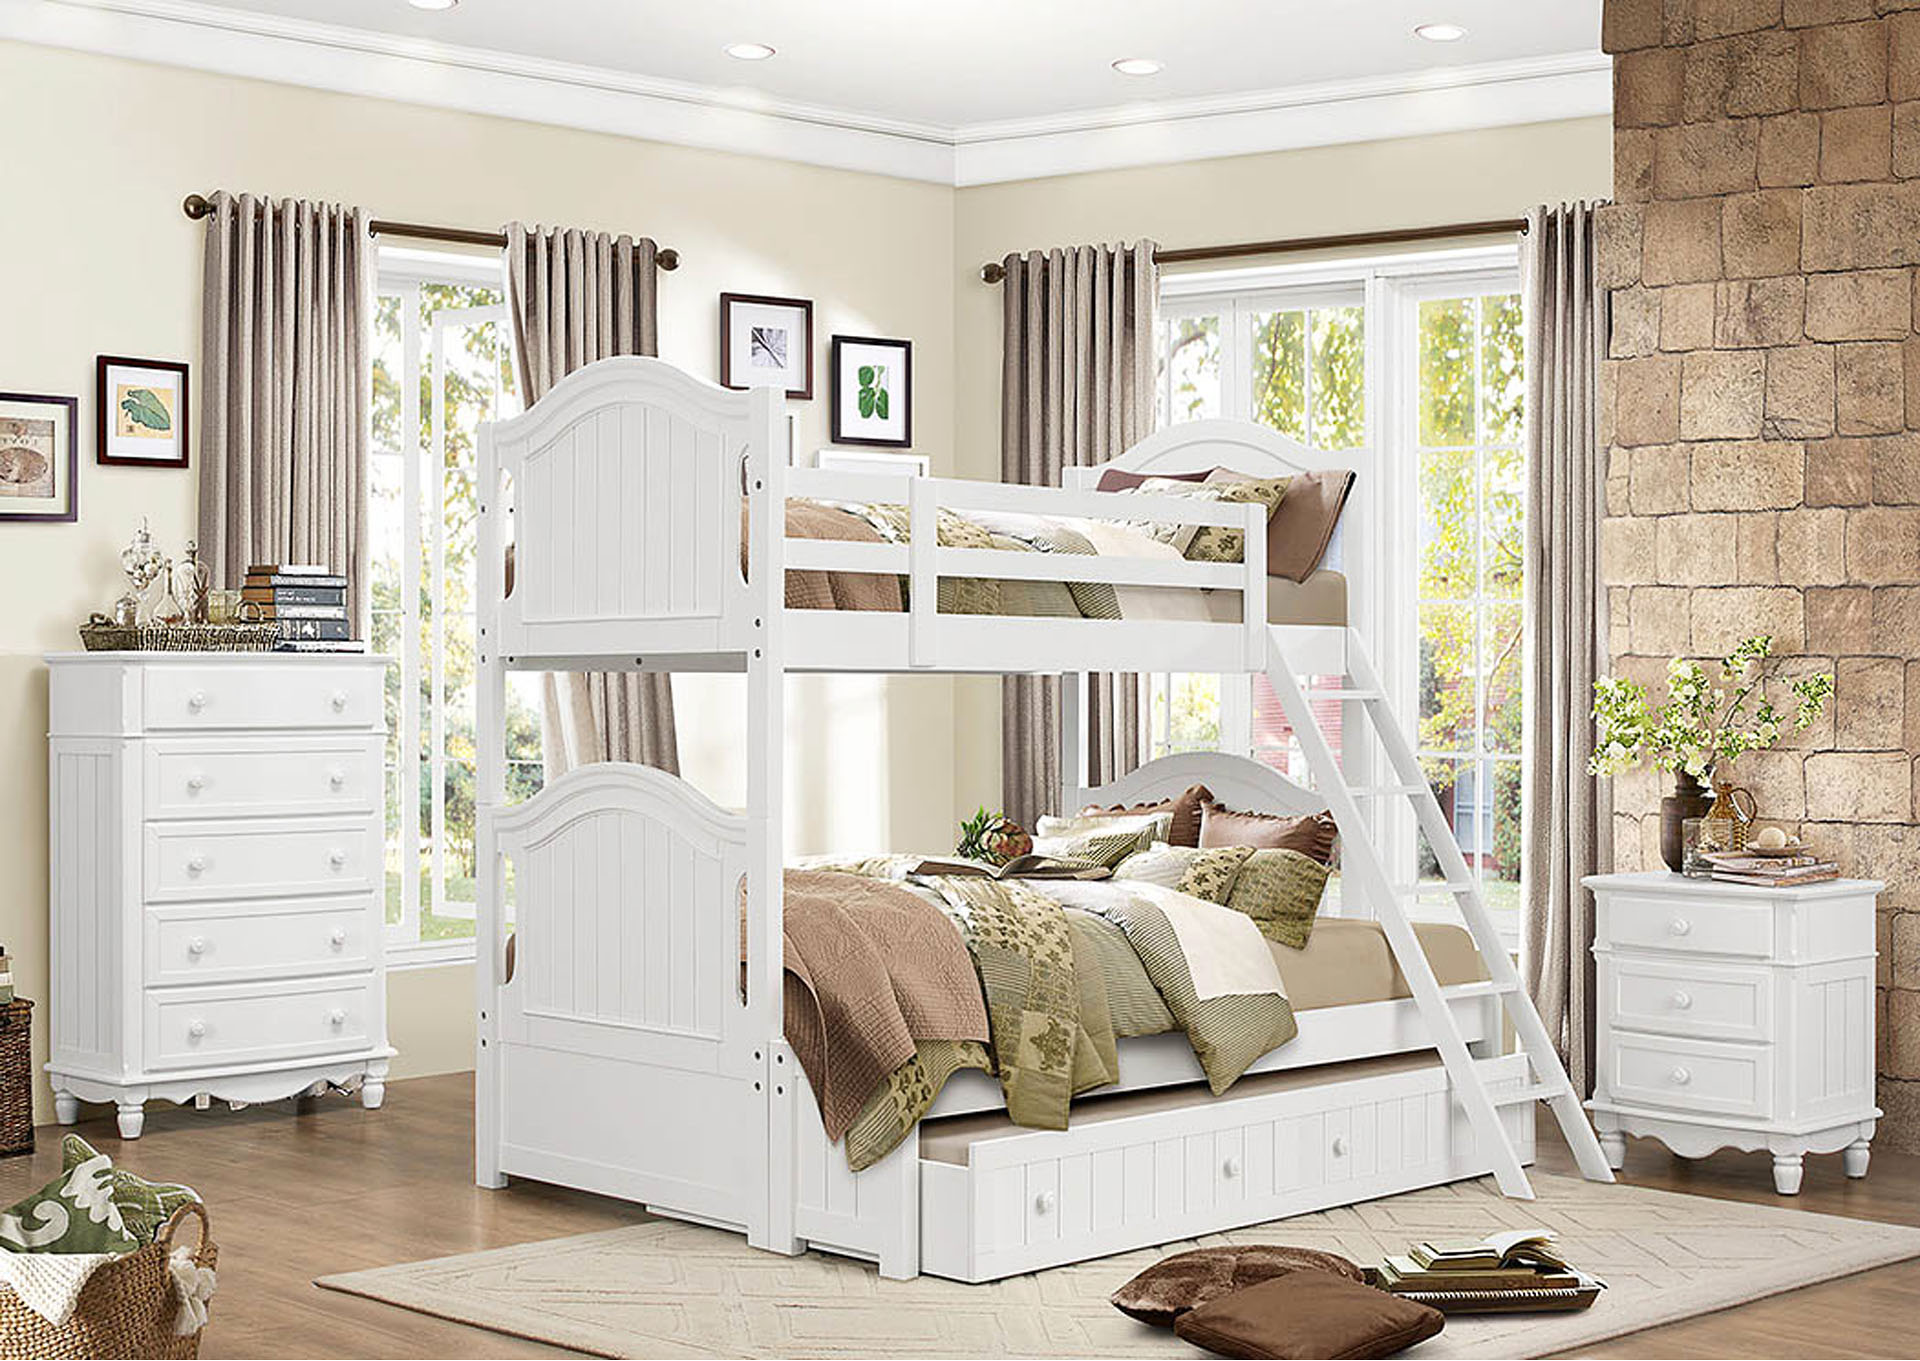 Clementine White Full Bunk Bed,Homelegance